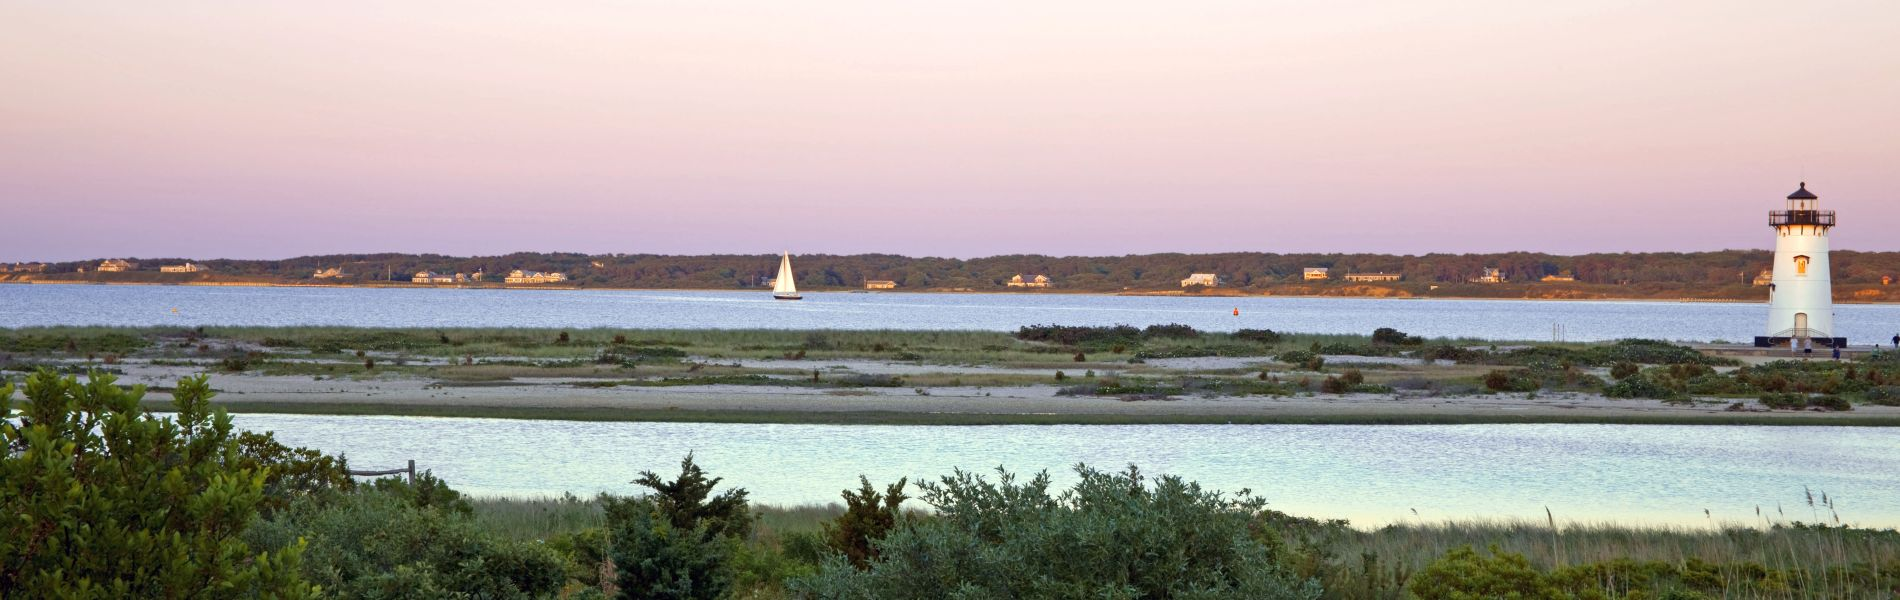 Living on Martha's Vineyard - View From the Captain's Cottages at Harbor View Hotel